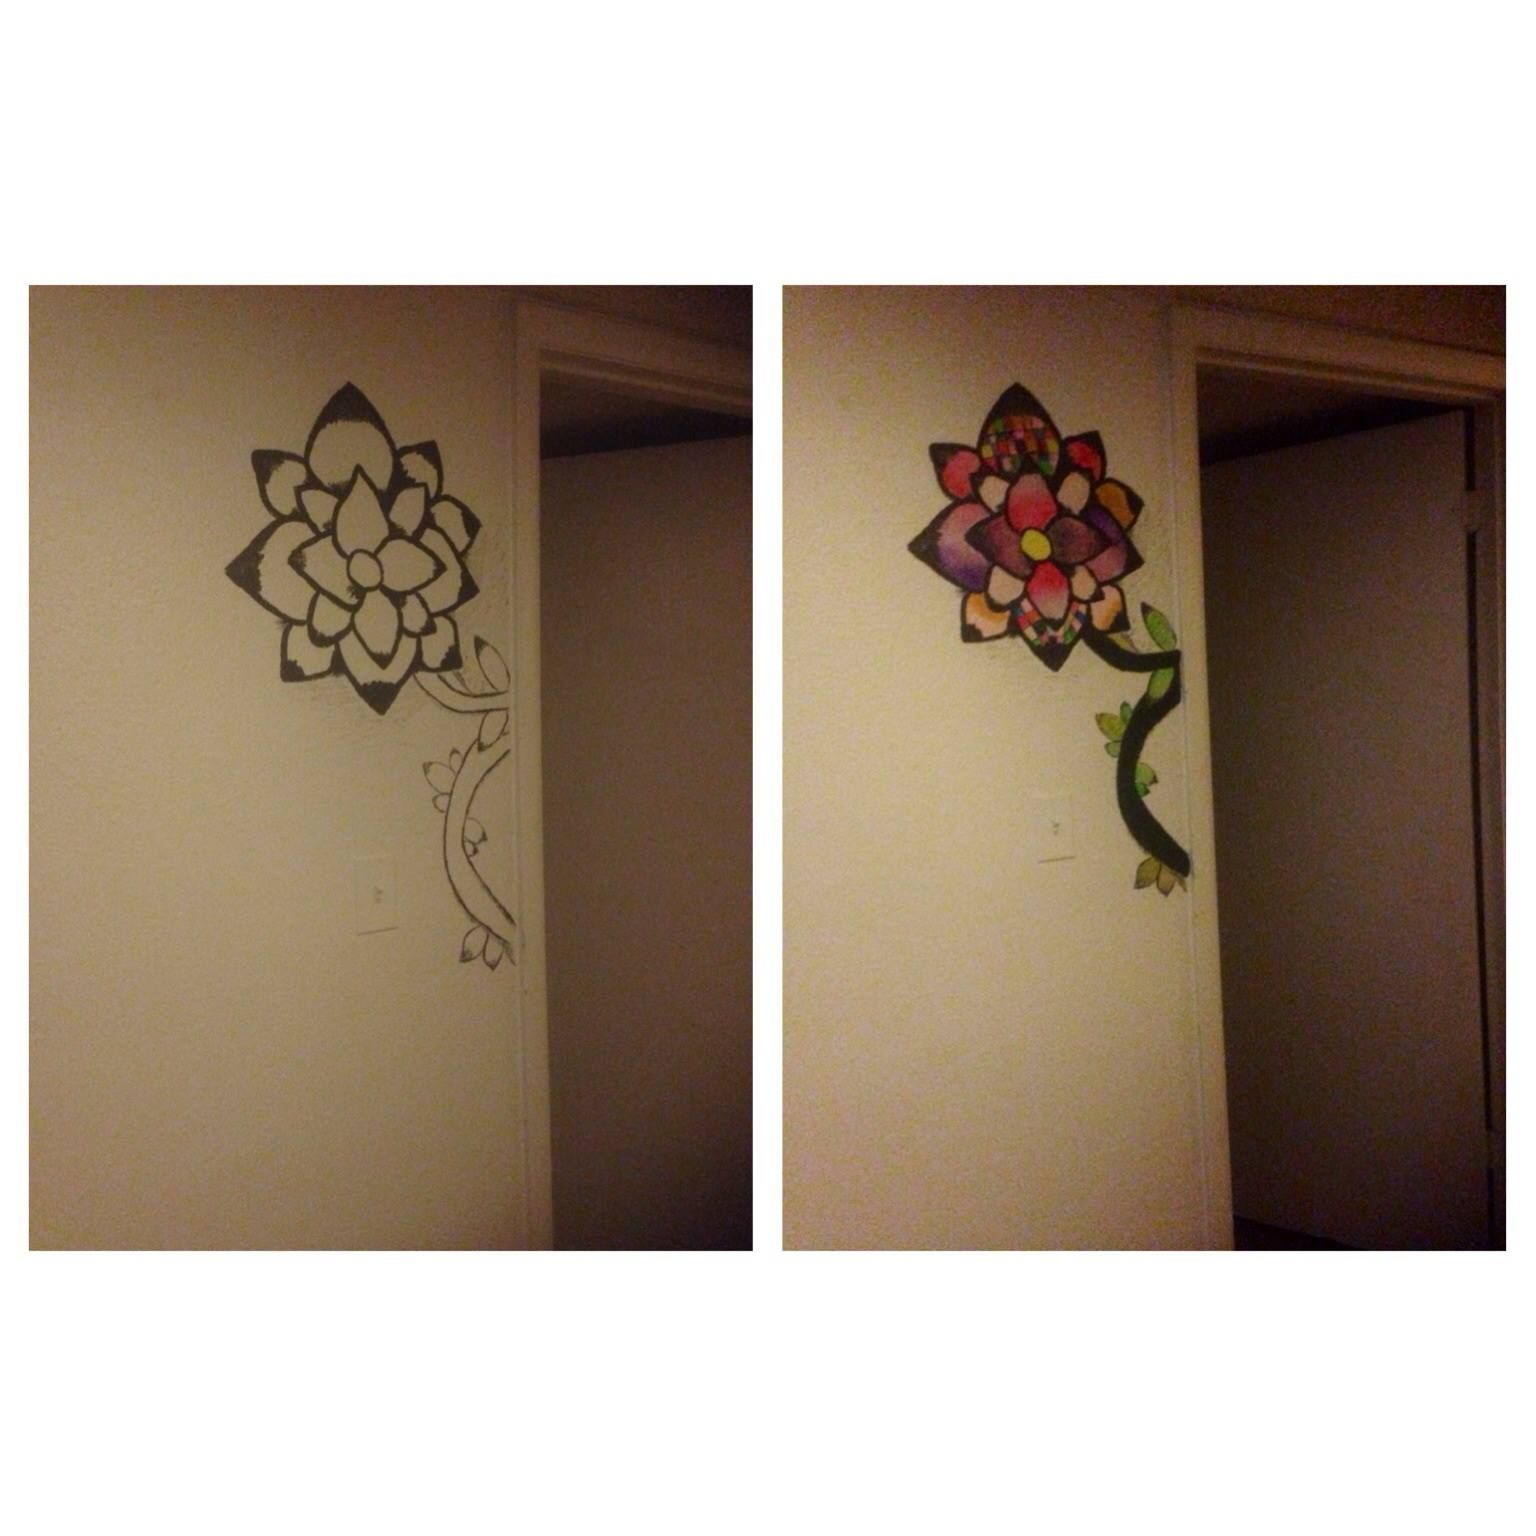 So I decide to paint a flower next to my sons room door ! Came out pretty good !